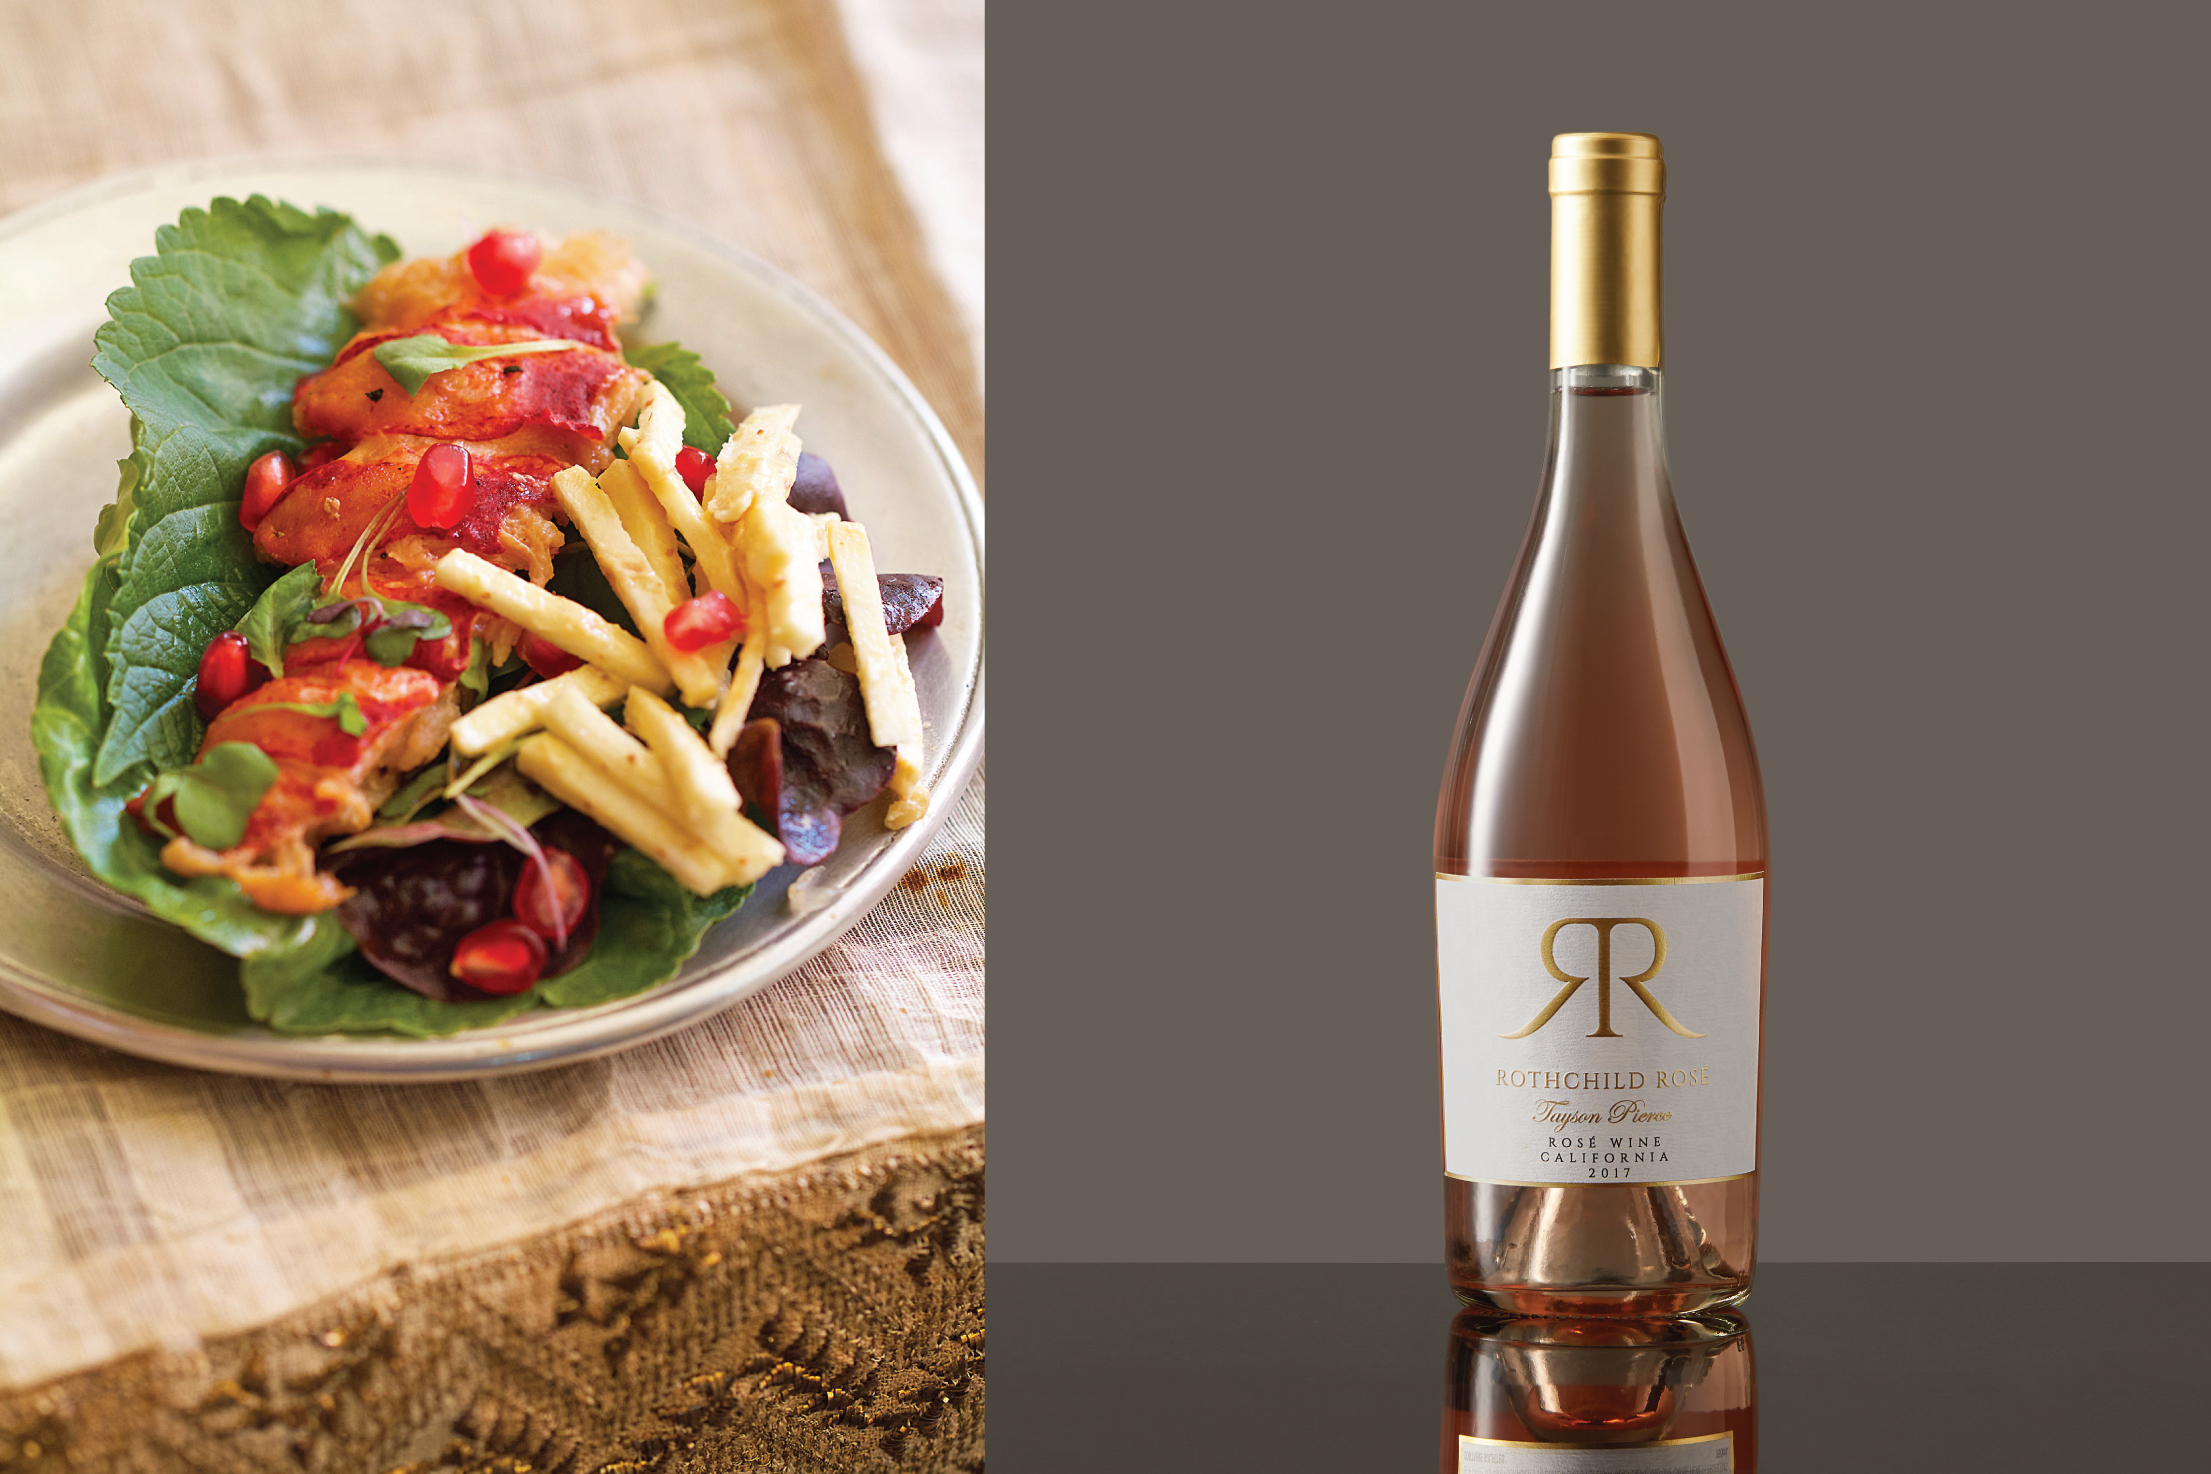 Tayson Pierce Rothchild Rosé paired with Grilled Lobster Lettuce Wraps with Sesame Remoulade and Pomegranate